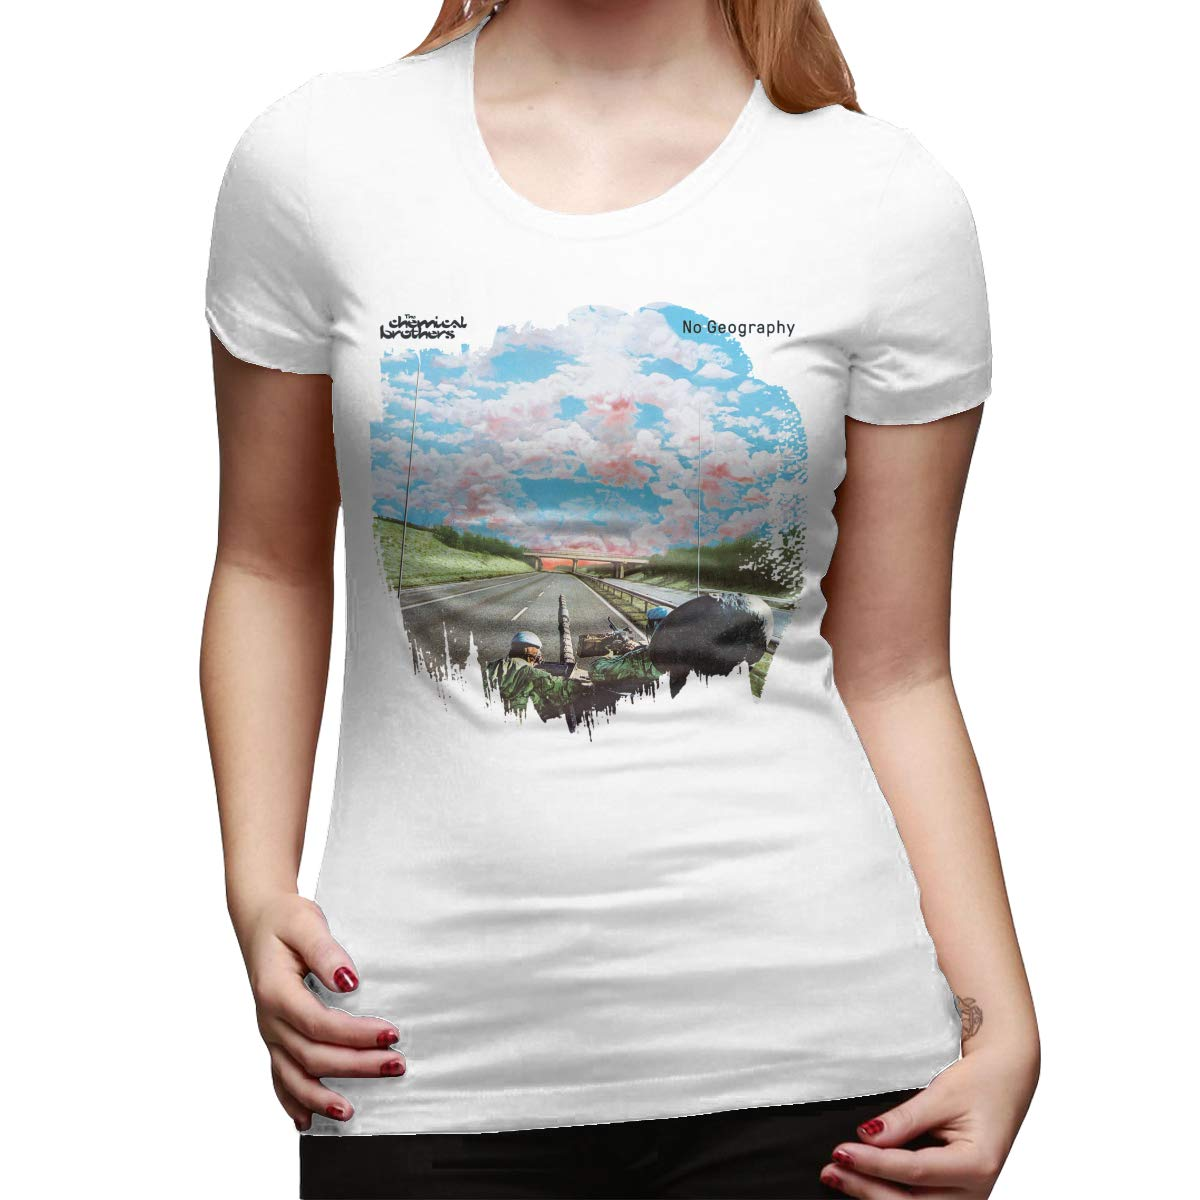 T-shirts For No Geography The Chemical Brothers Style Short Sleeve Tee